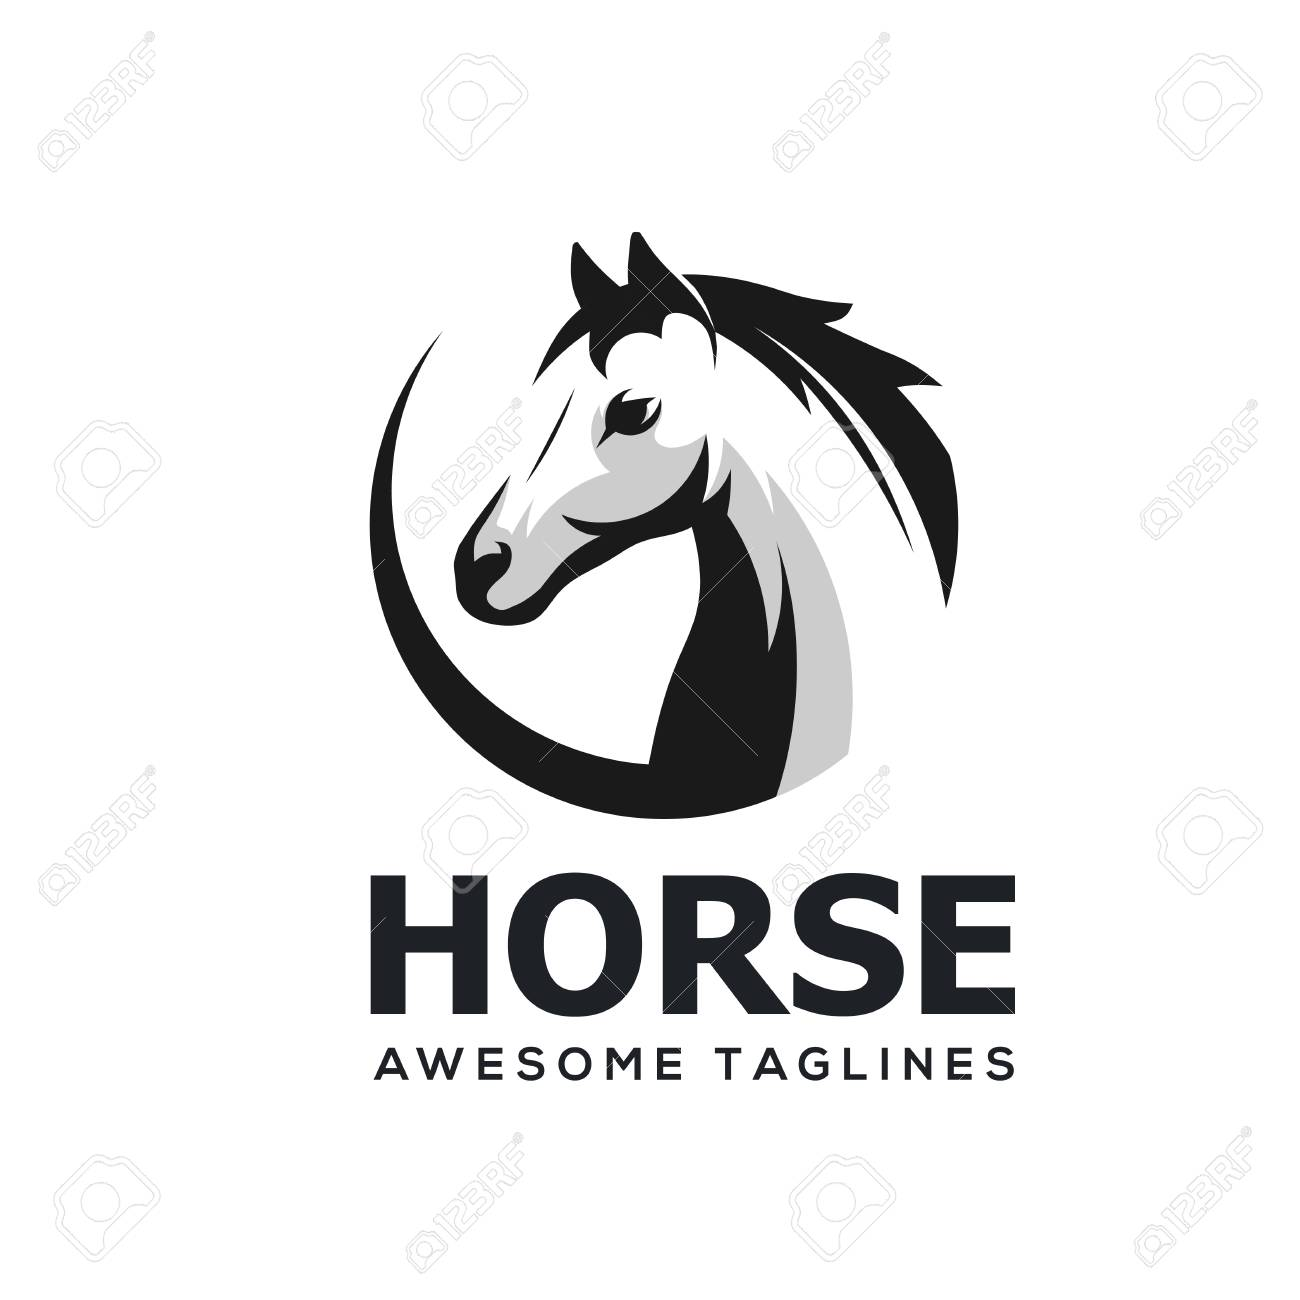 Horse Head Abstract Circle Simple Logo Template Royalty Free Cliparts Vectors And Stock Illustration Image 123252600